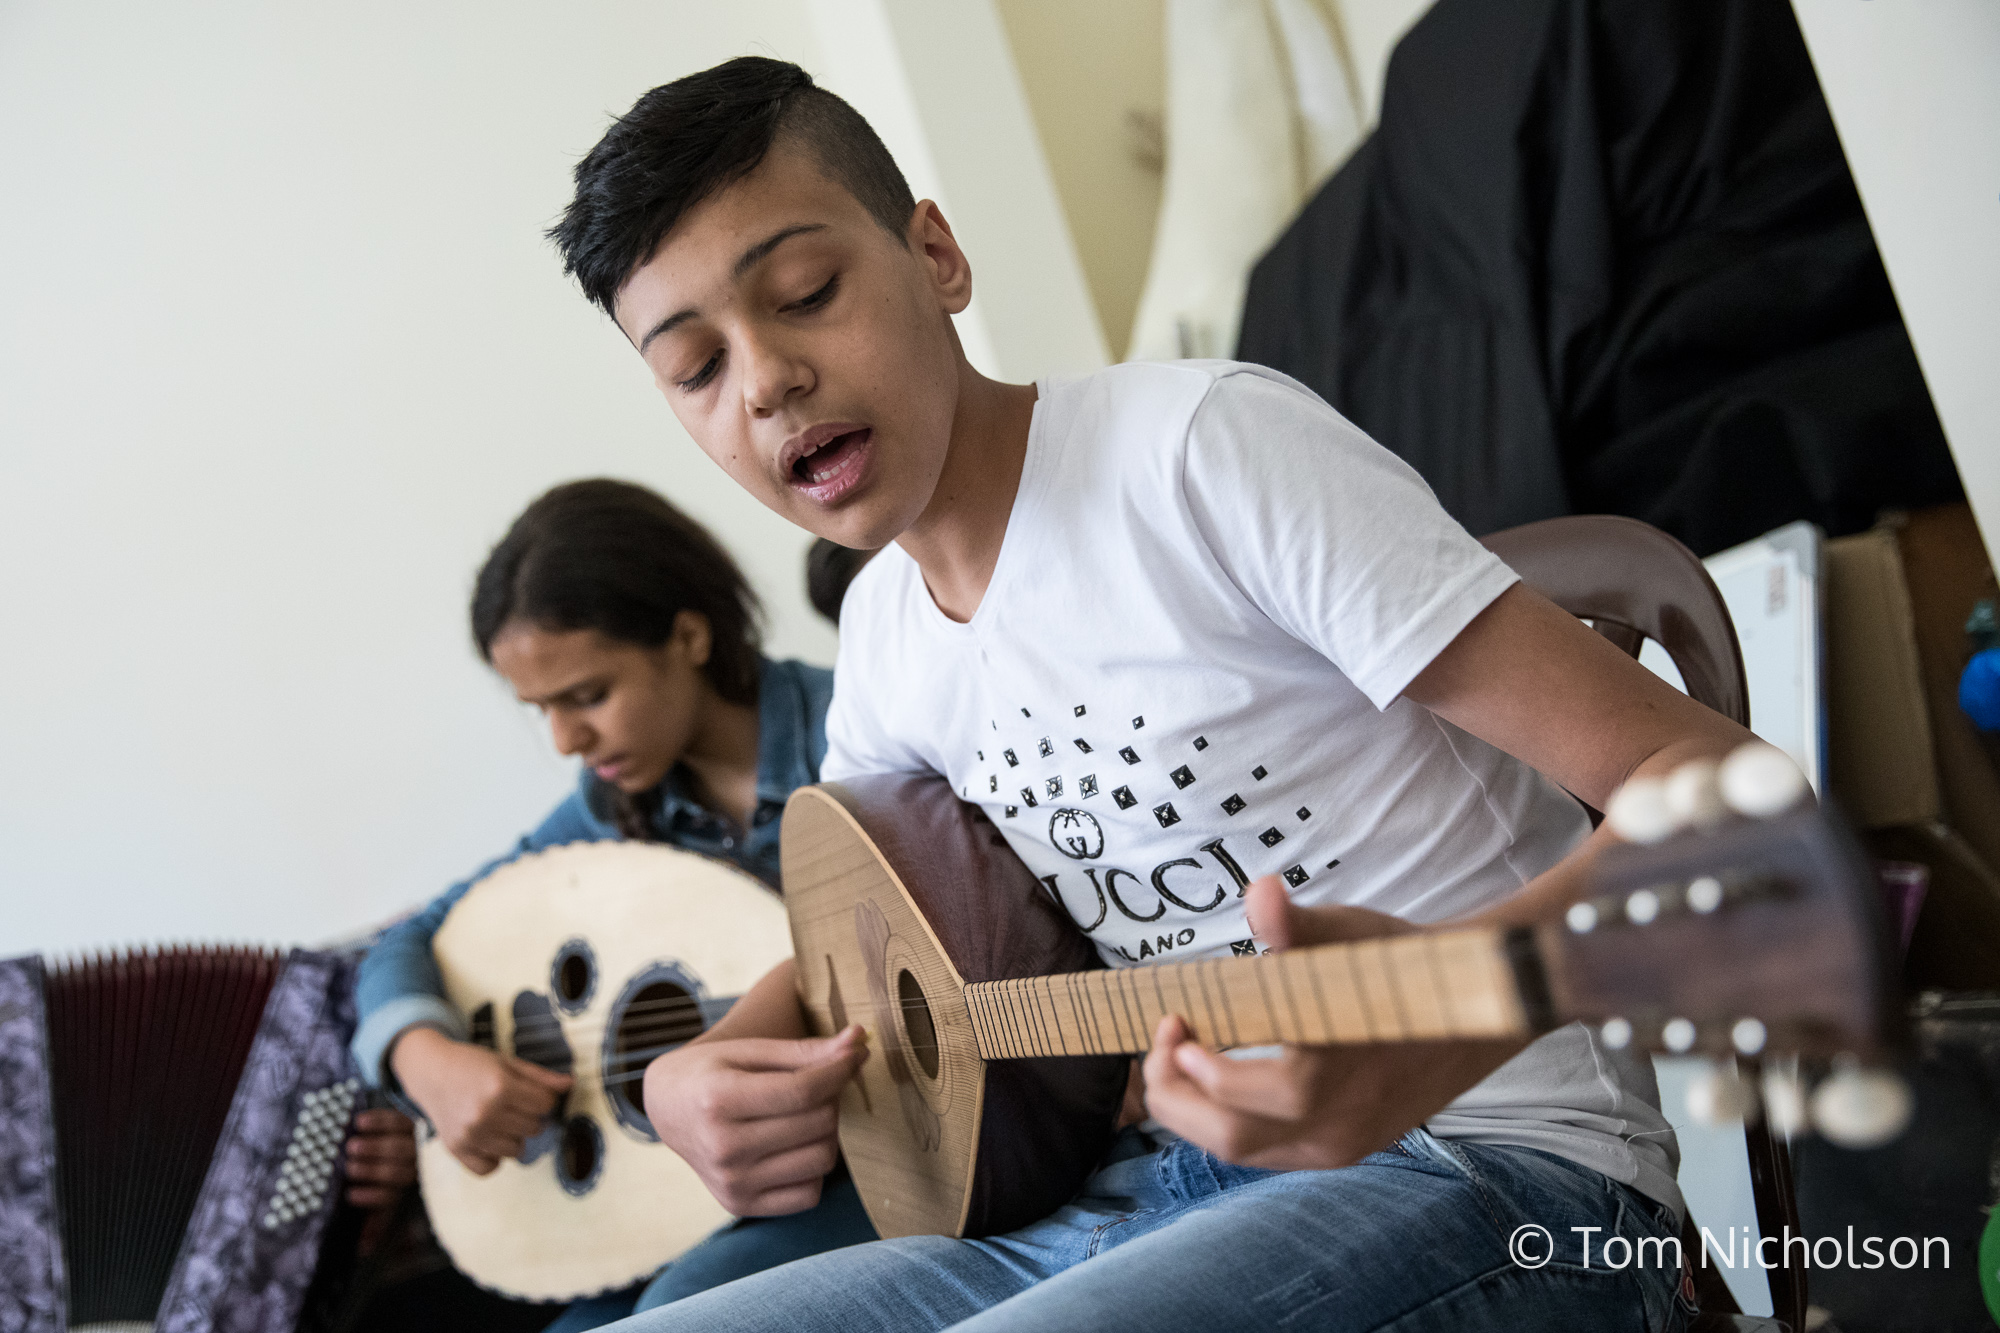 ©2018 Tom Nicholson. 20/06/2018. Bekaa Valley, Lebanon. A student from the Action for Hope centre in Bekaa Valley, Lebanon plays traditional Arab folk music.